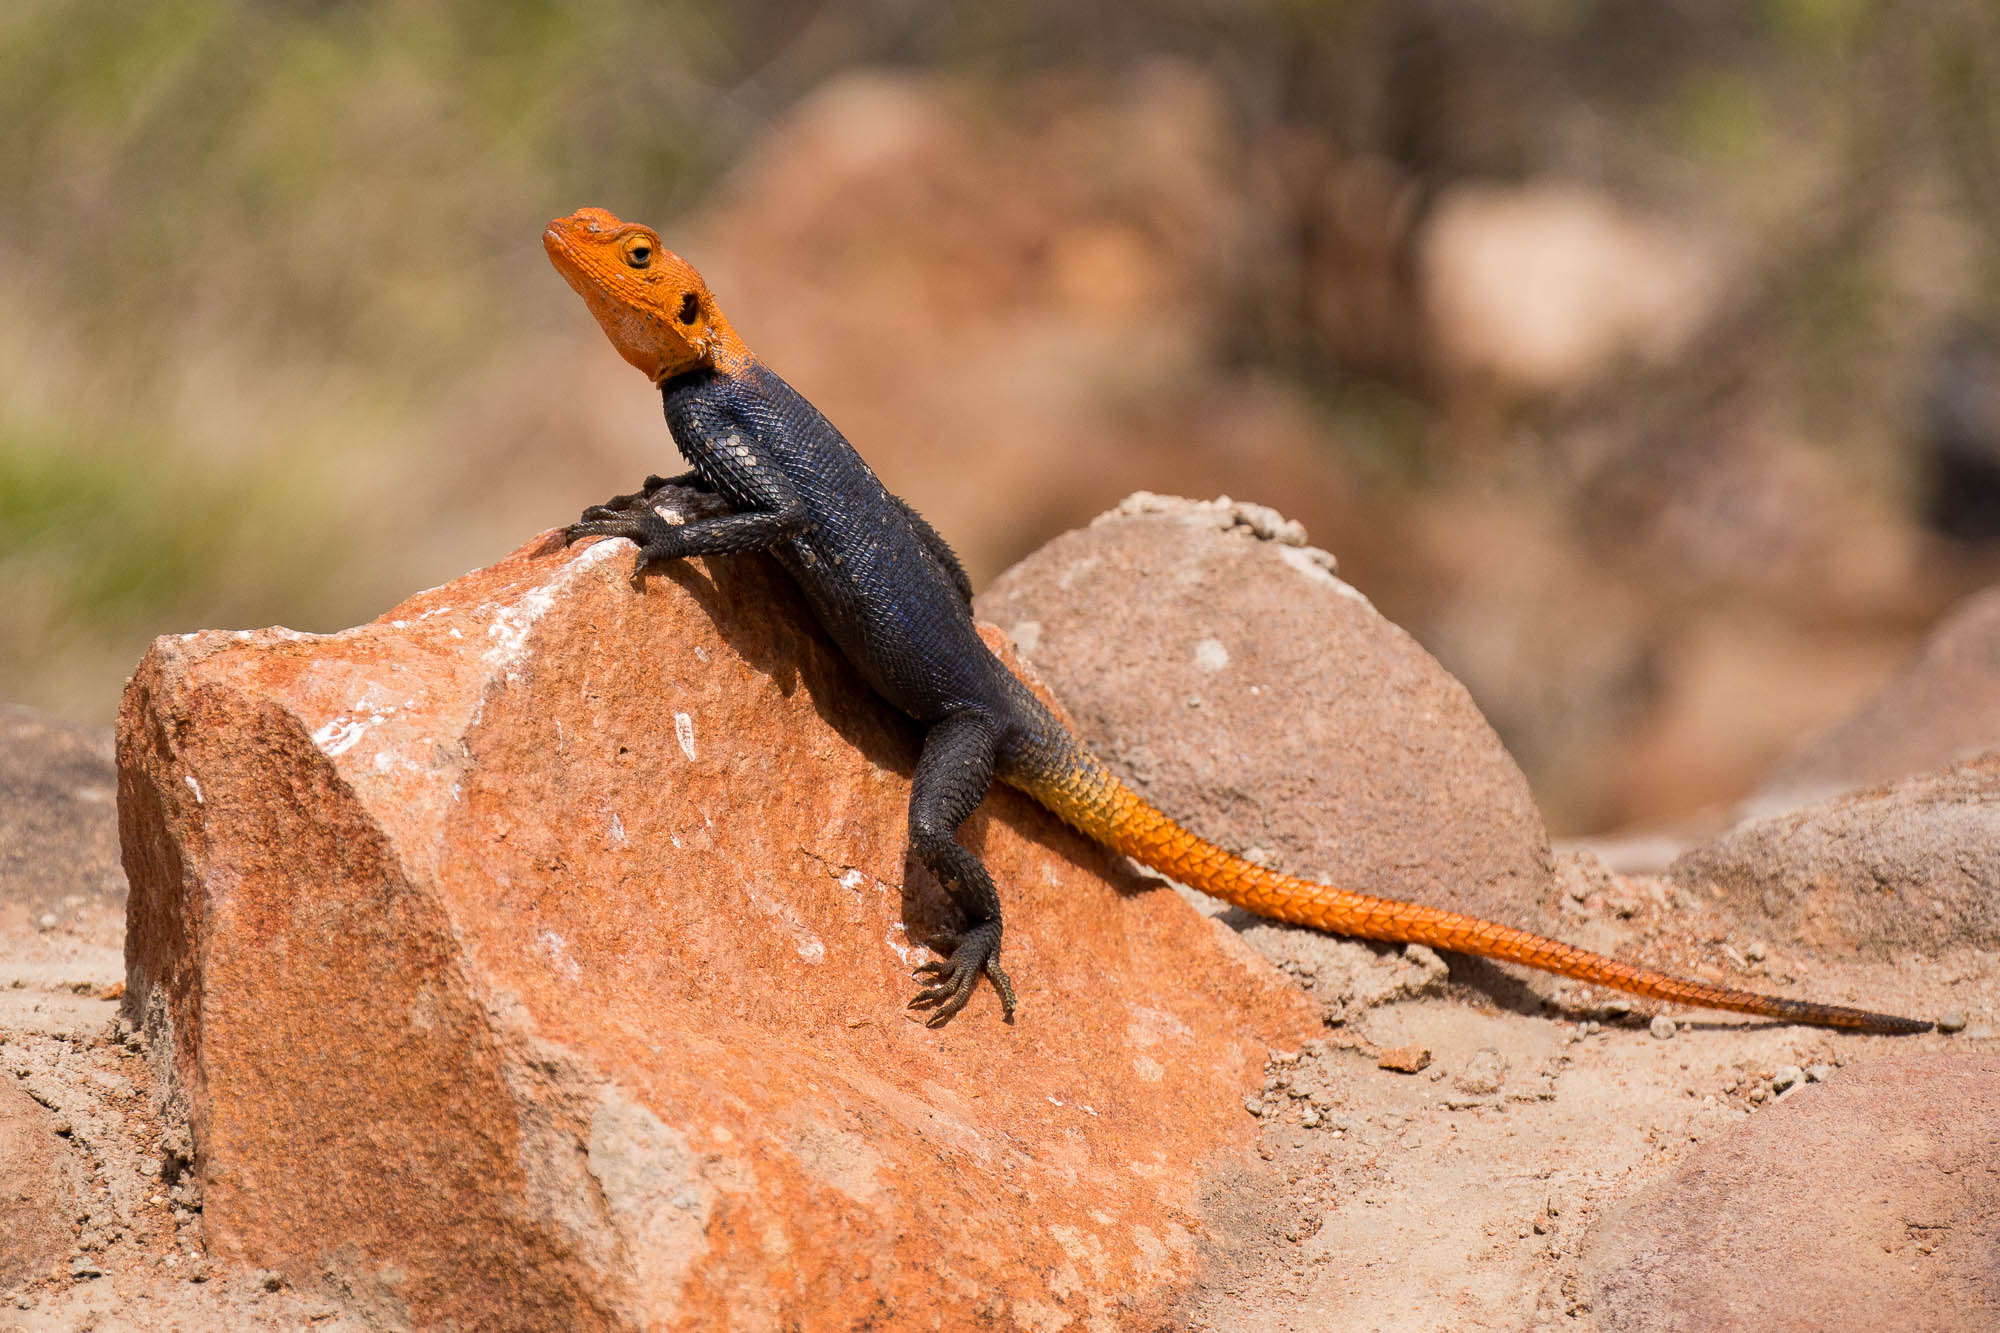 I caught this lizard sunning himself on the rocks around the edge of the pool (84mm)